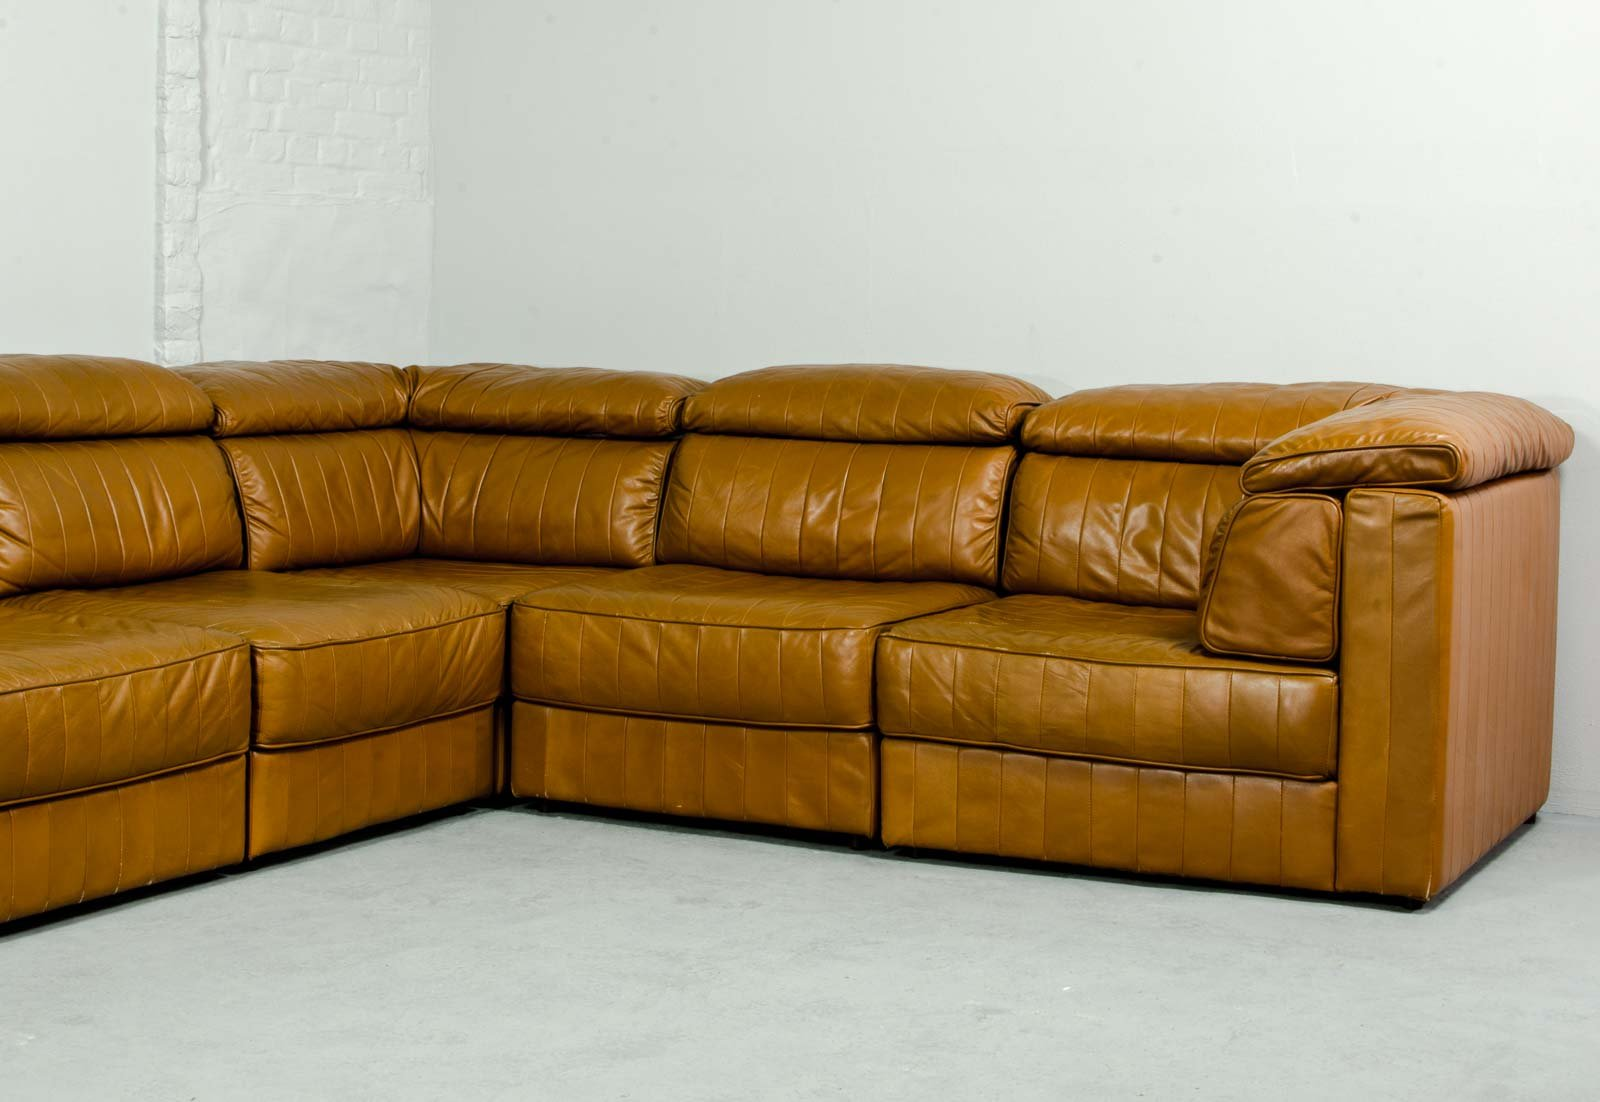 Mid Century Modular Patchwork Sofa By Laauser 1970s For